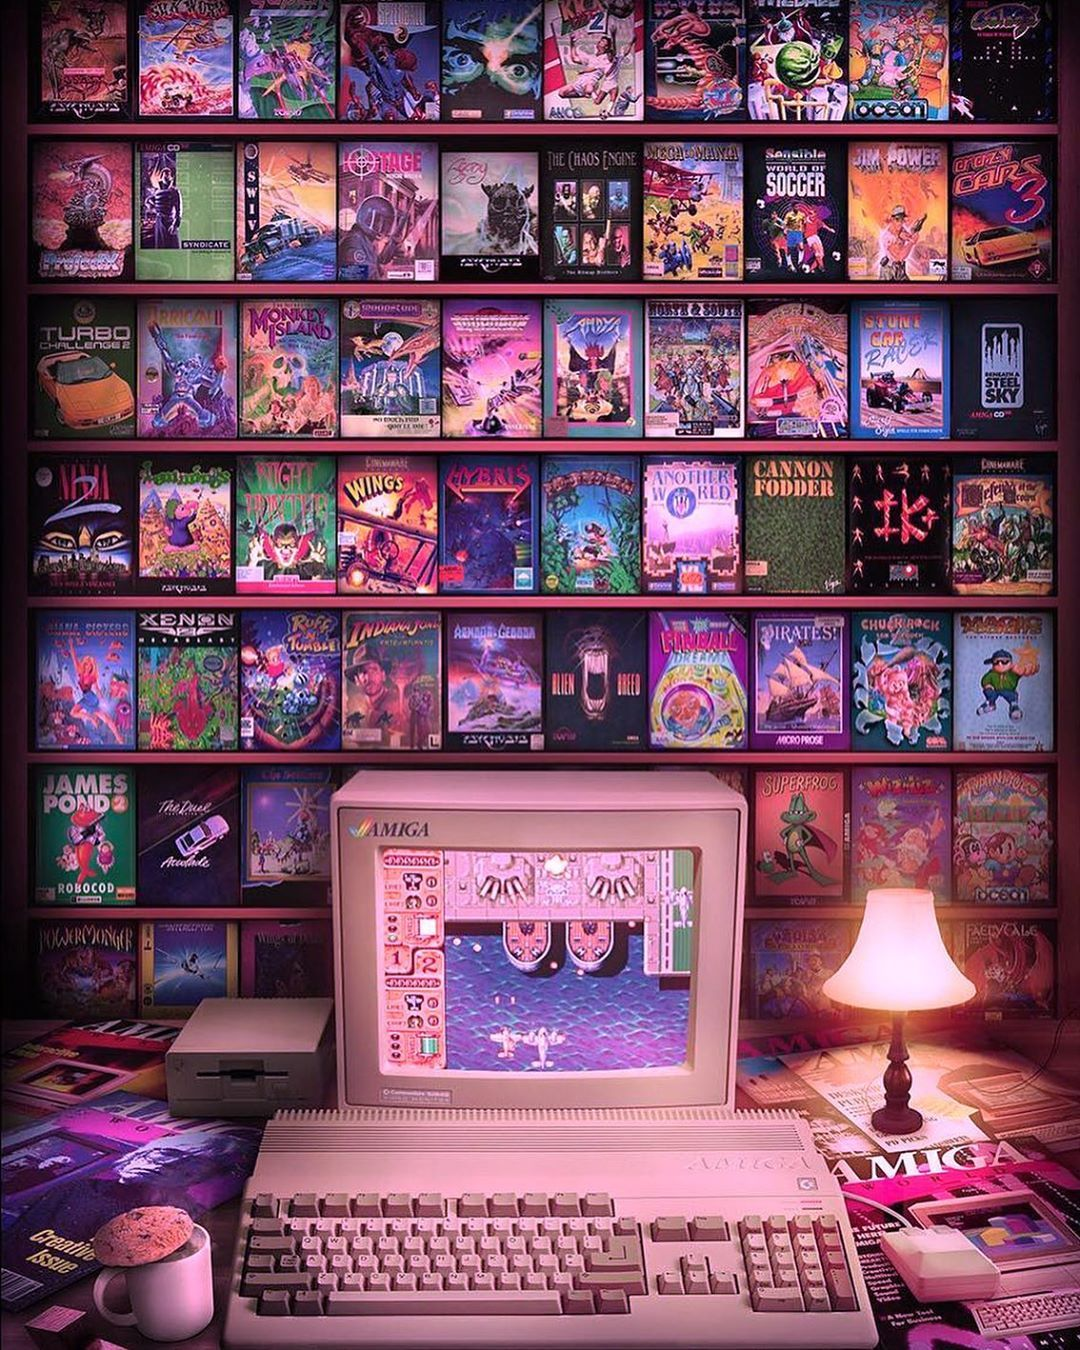 Old Games For Oldschool Pc Computer 90s 80s Retro Gaming Art Game Logo Design Video Game Posters